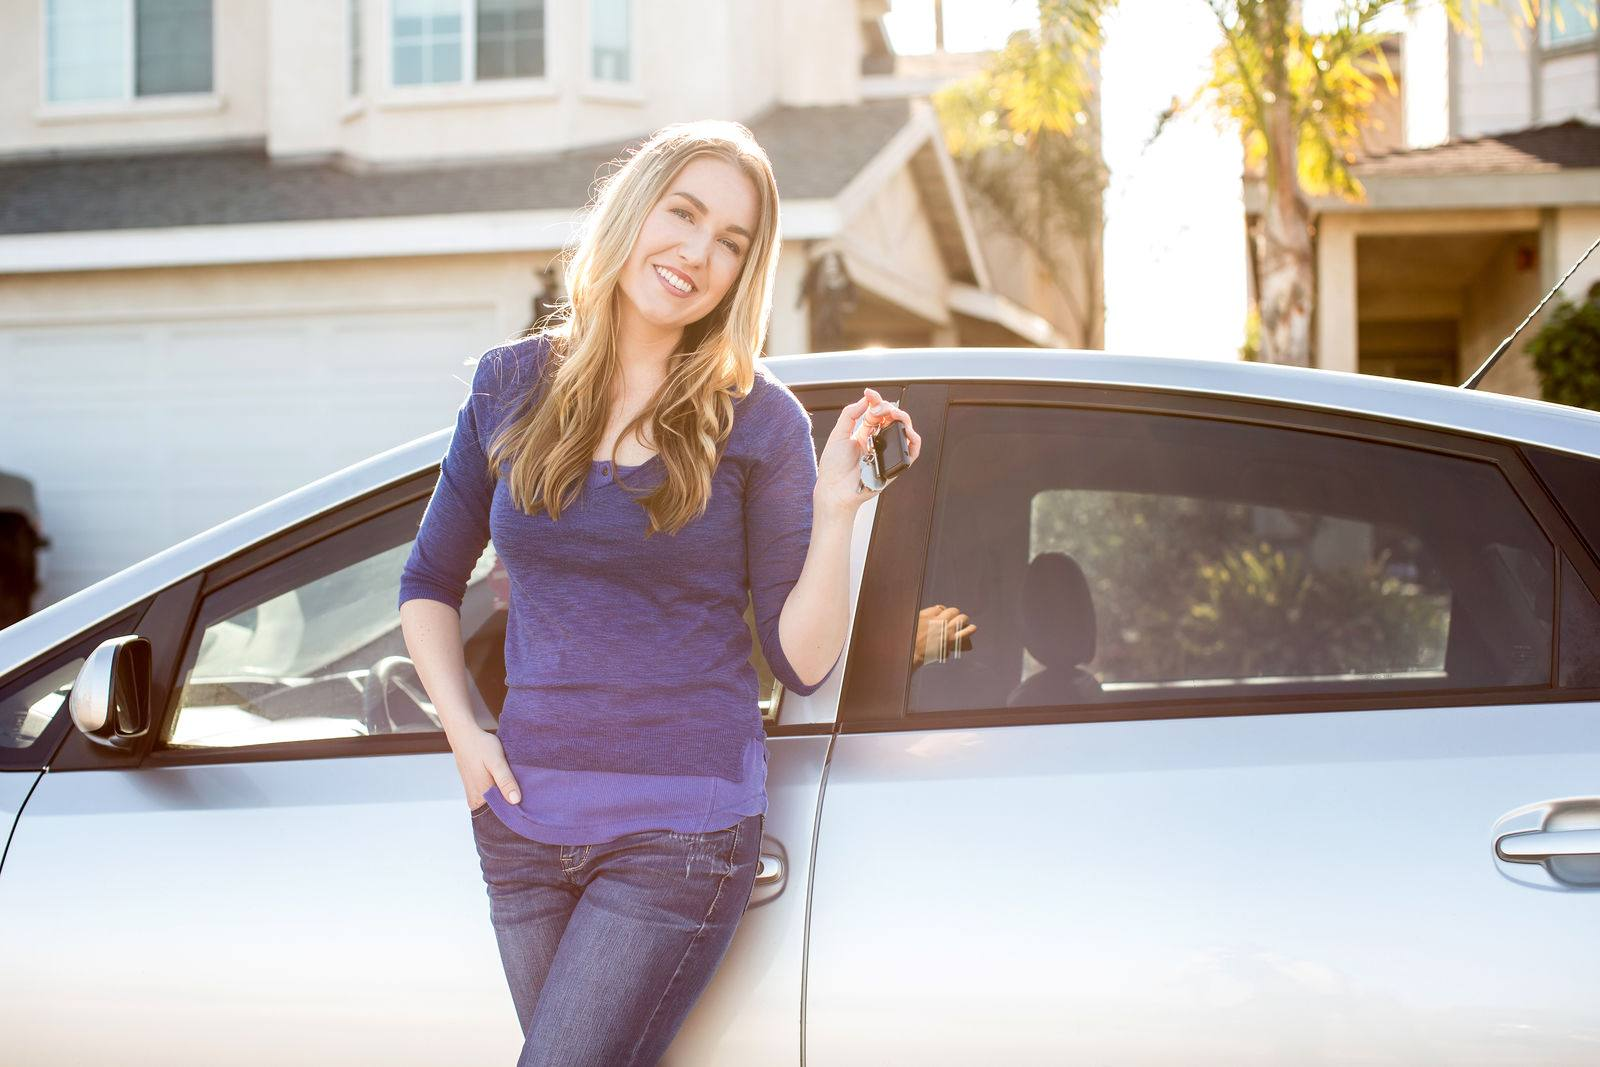 What Are the Best Insurance Companies for Bundling Home and Auto Insurance?